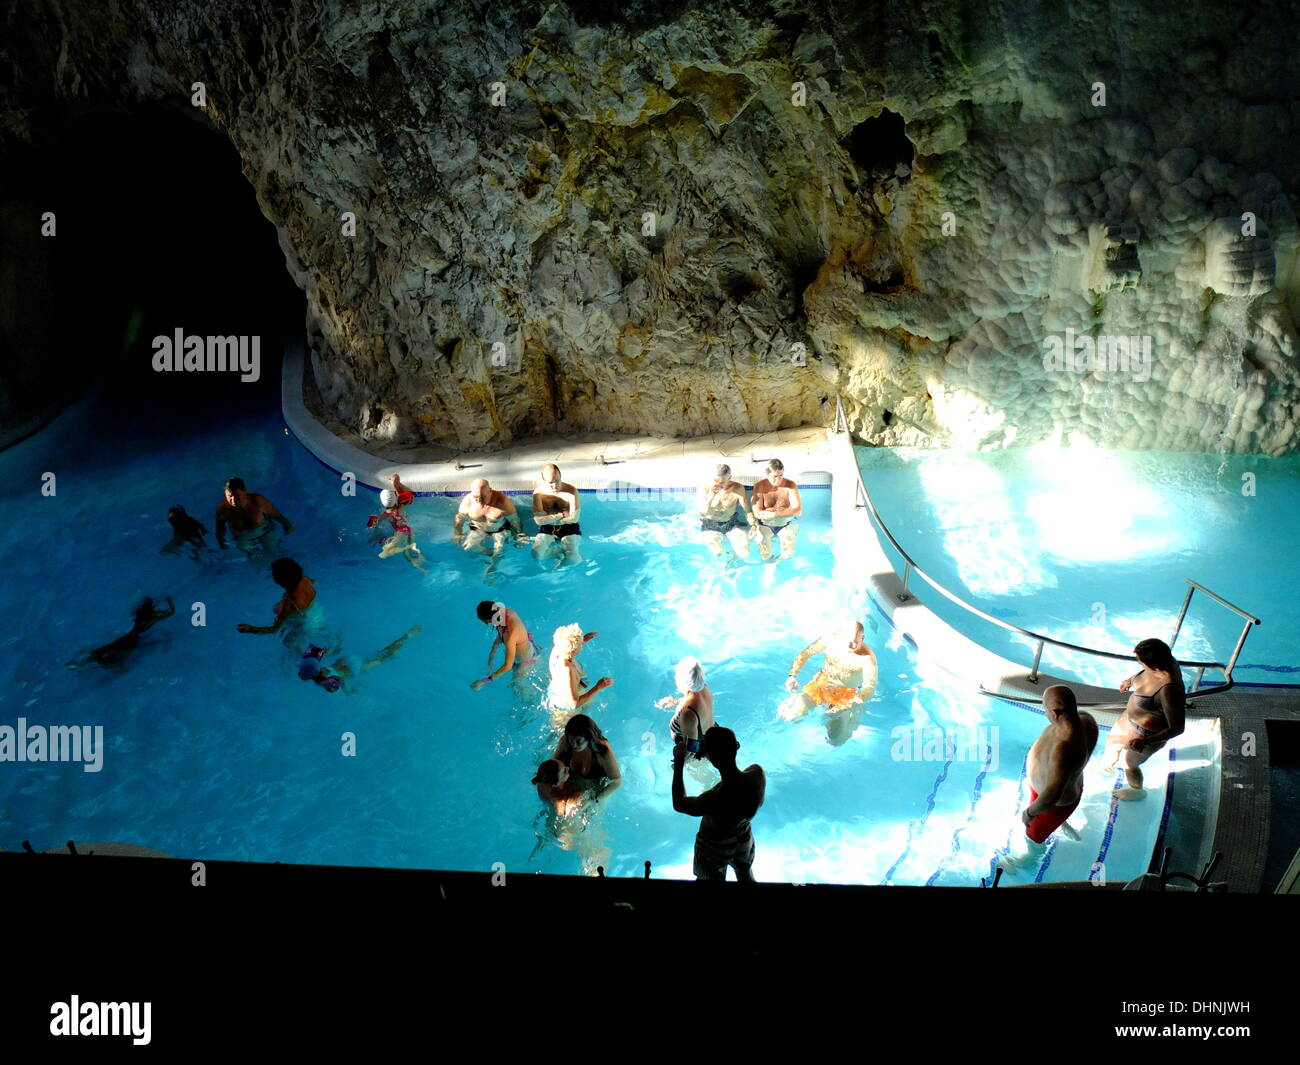 Miskolc Hungary  city photos gallery : Miskolc , Hungary 10th, November 2013 Miskolc Topolca Cave Baths With ...